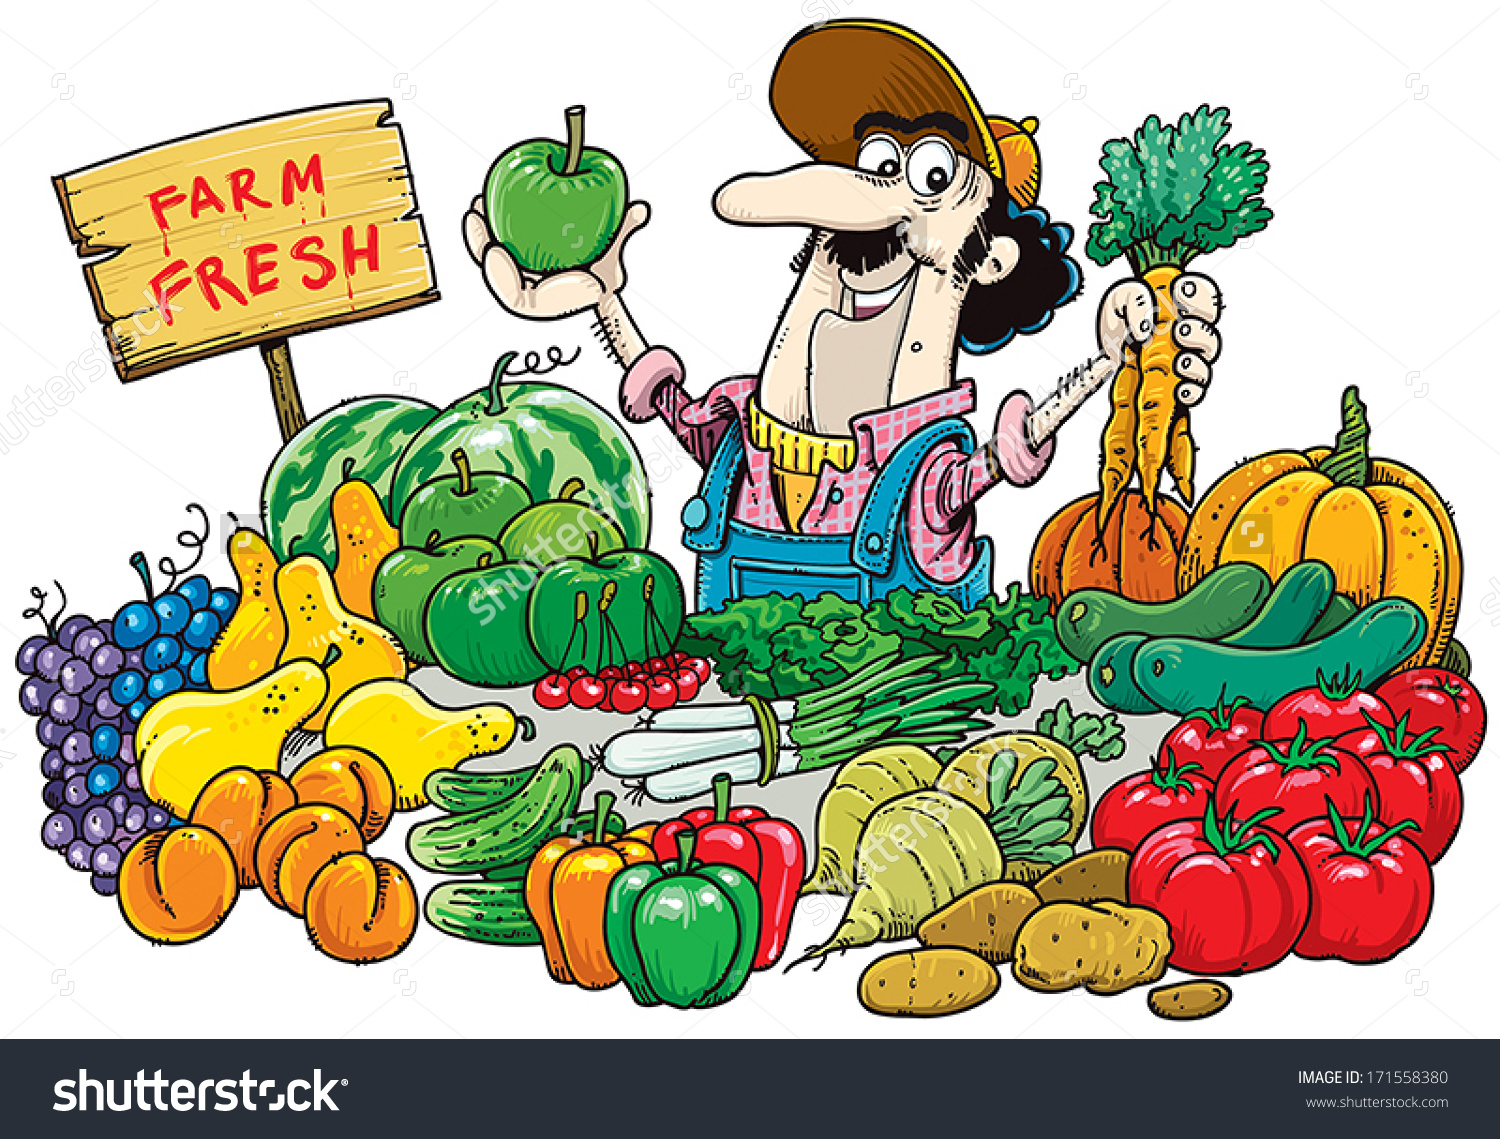 Market clipart. Cart farmers free on